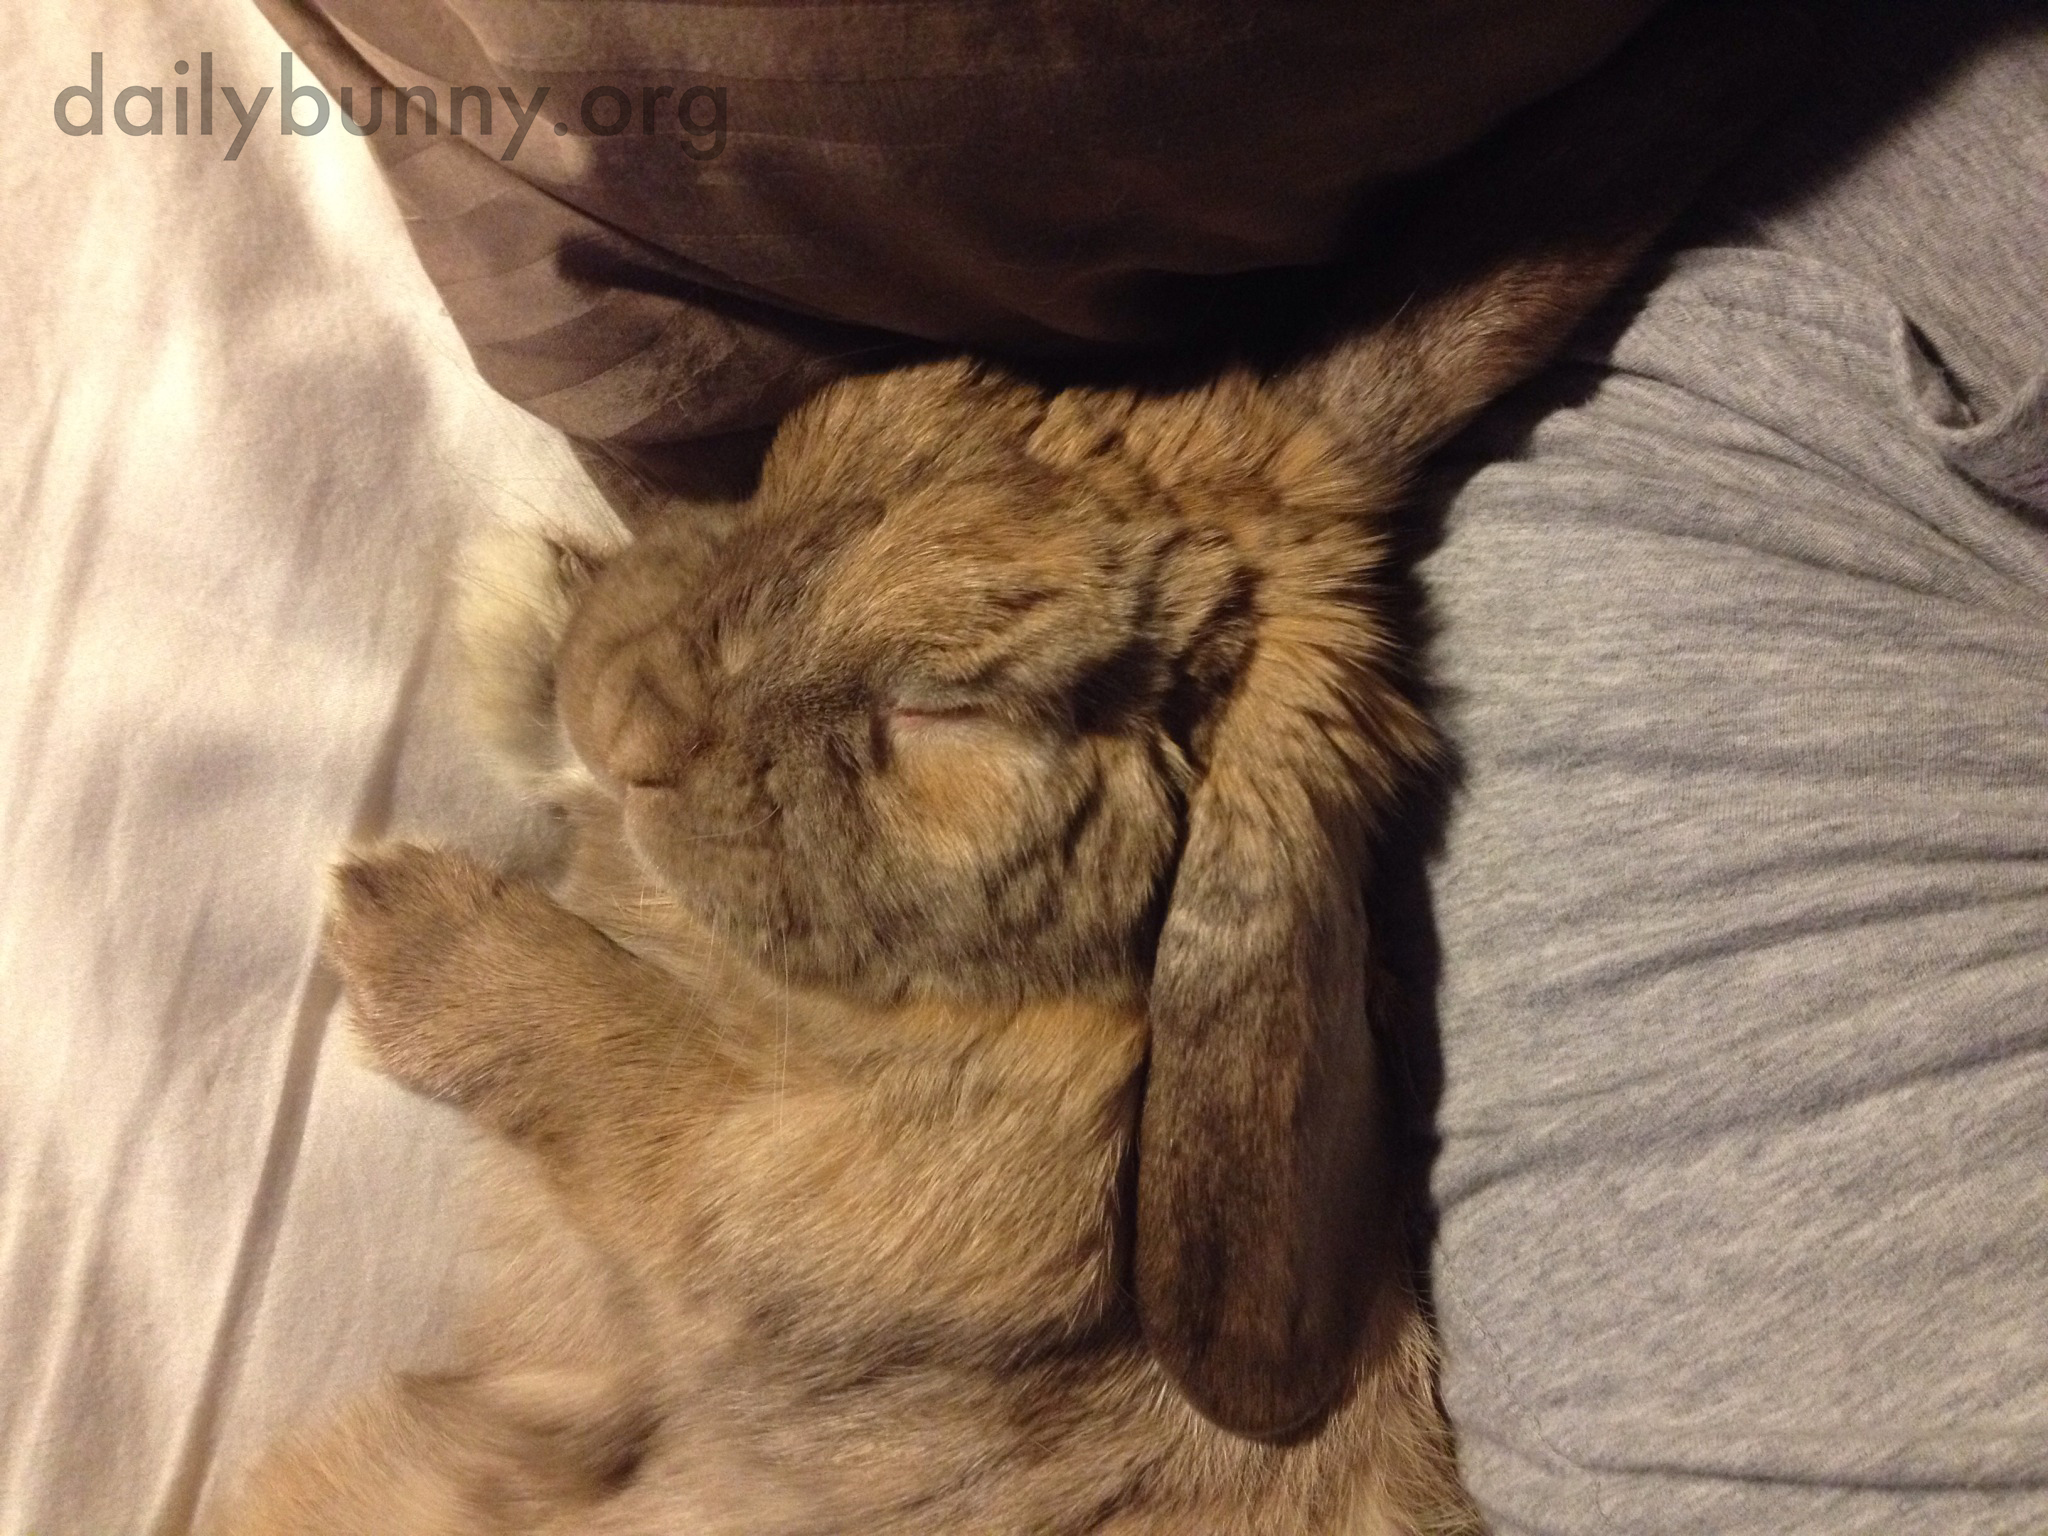 Don't Get Out of Bed or You'll Wake Up Bunny!